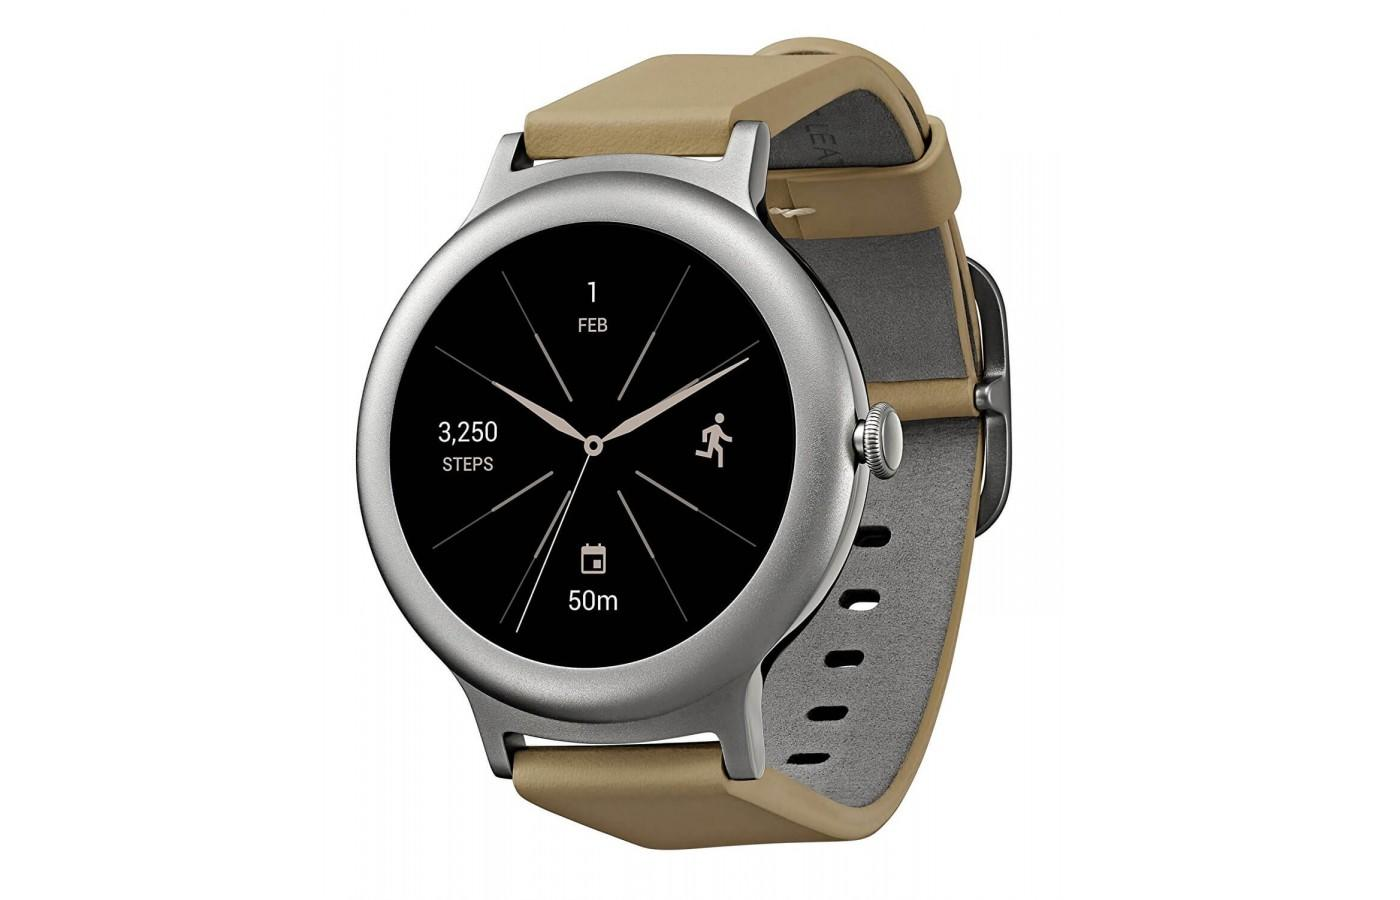 LG Watch Style Smart Watch